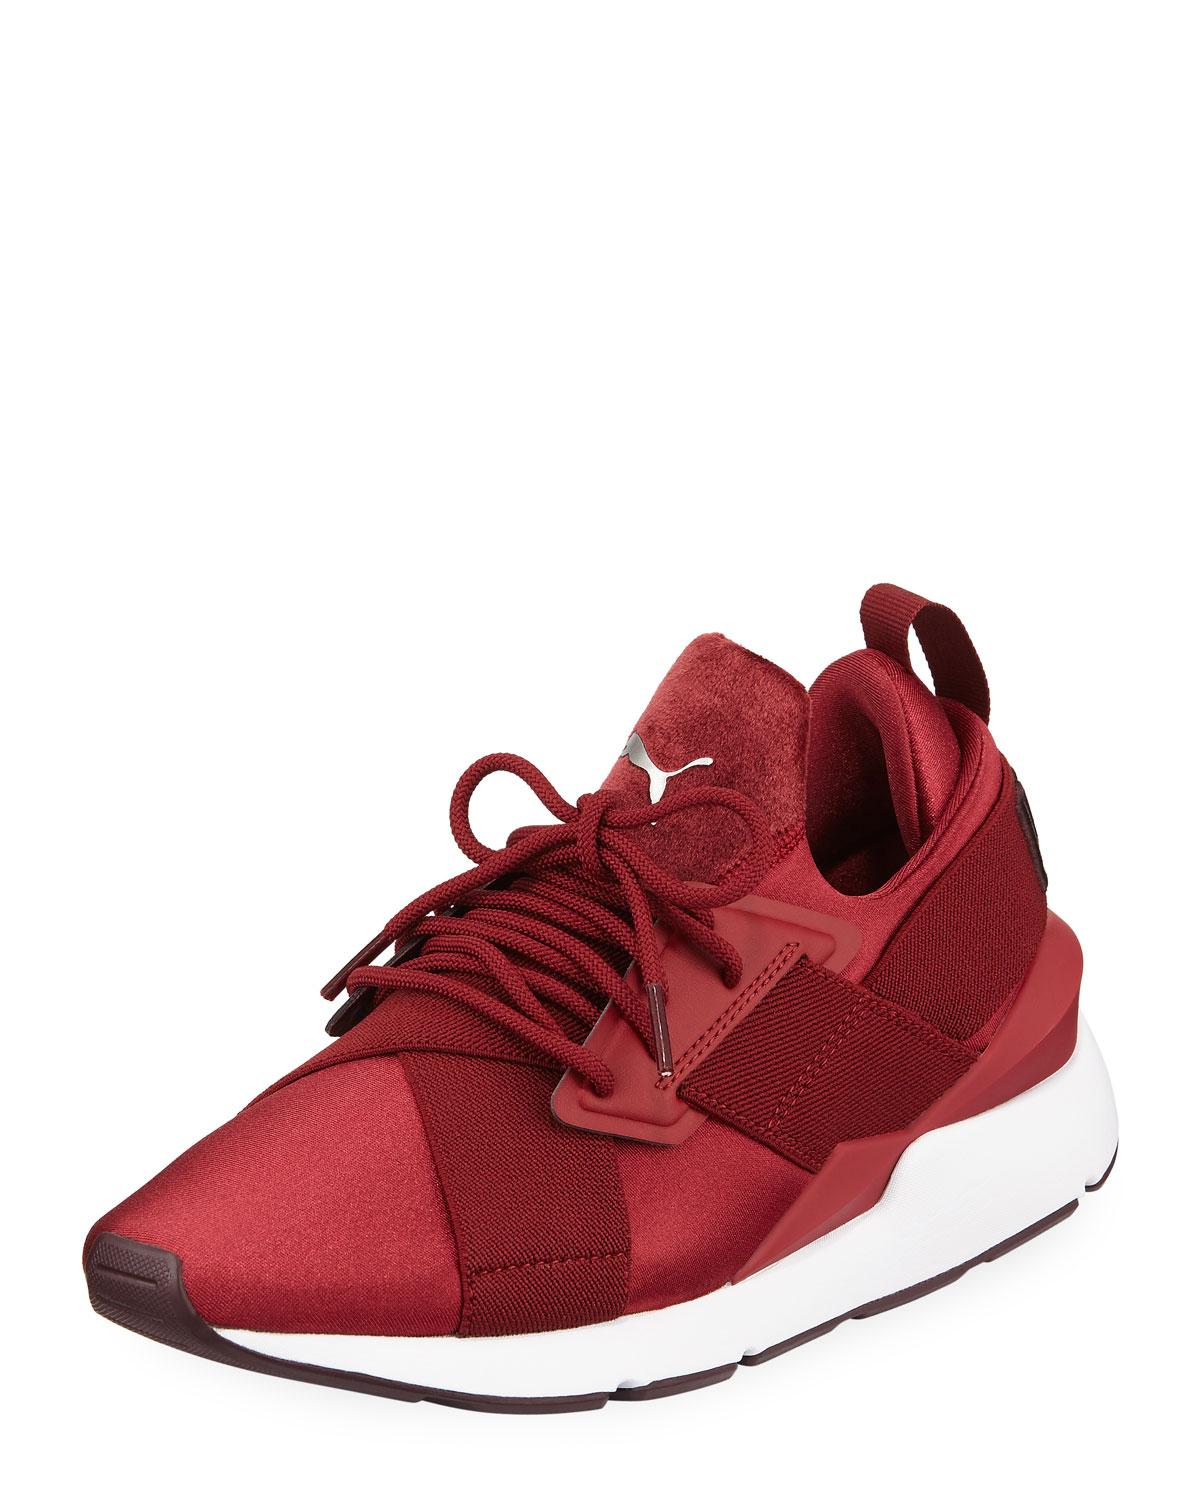 783eee1d0e55da Lyst - PUMA Muse Satin Ii Lace-up Sneakers in Red - Save 35%